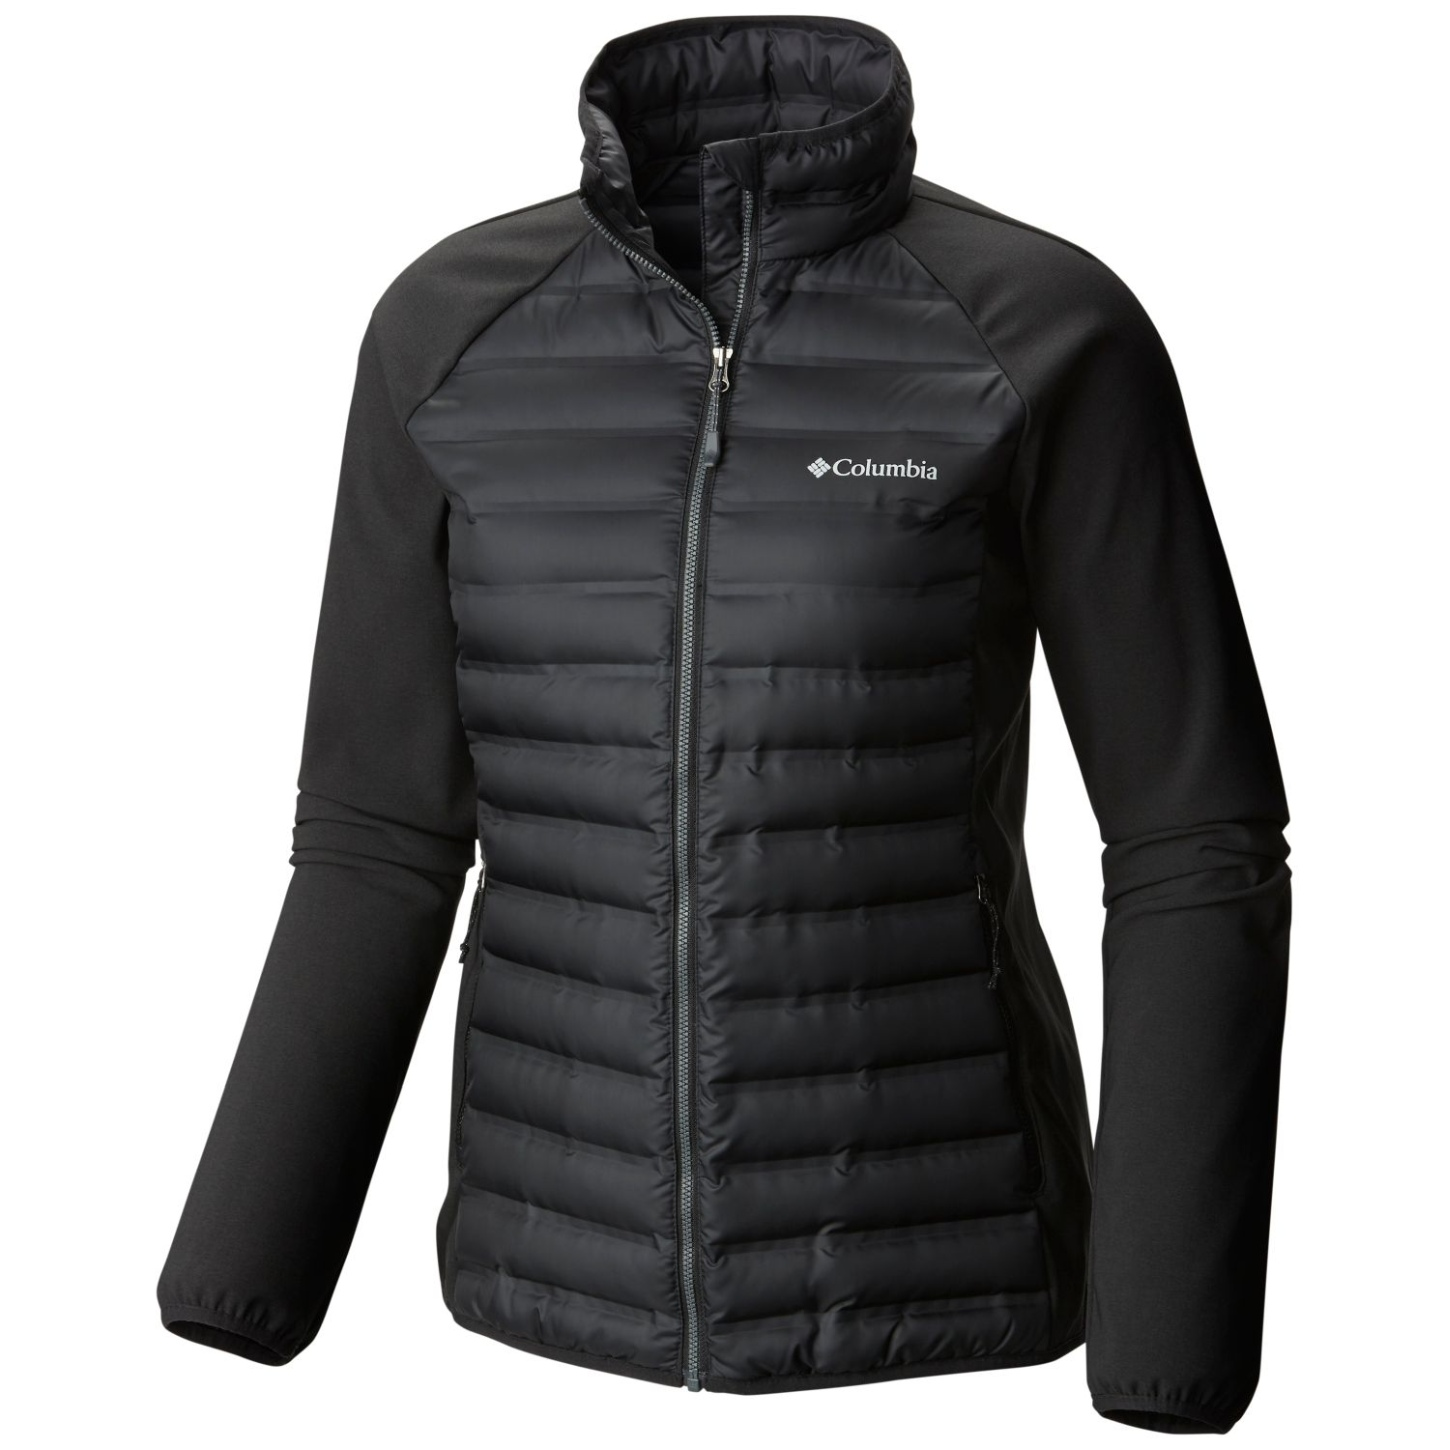 Columbia Flash Forward Hybrid-Jacke für Damen Black-30